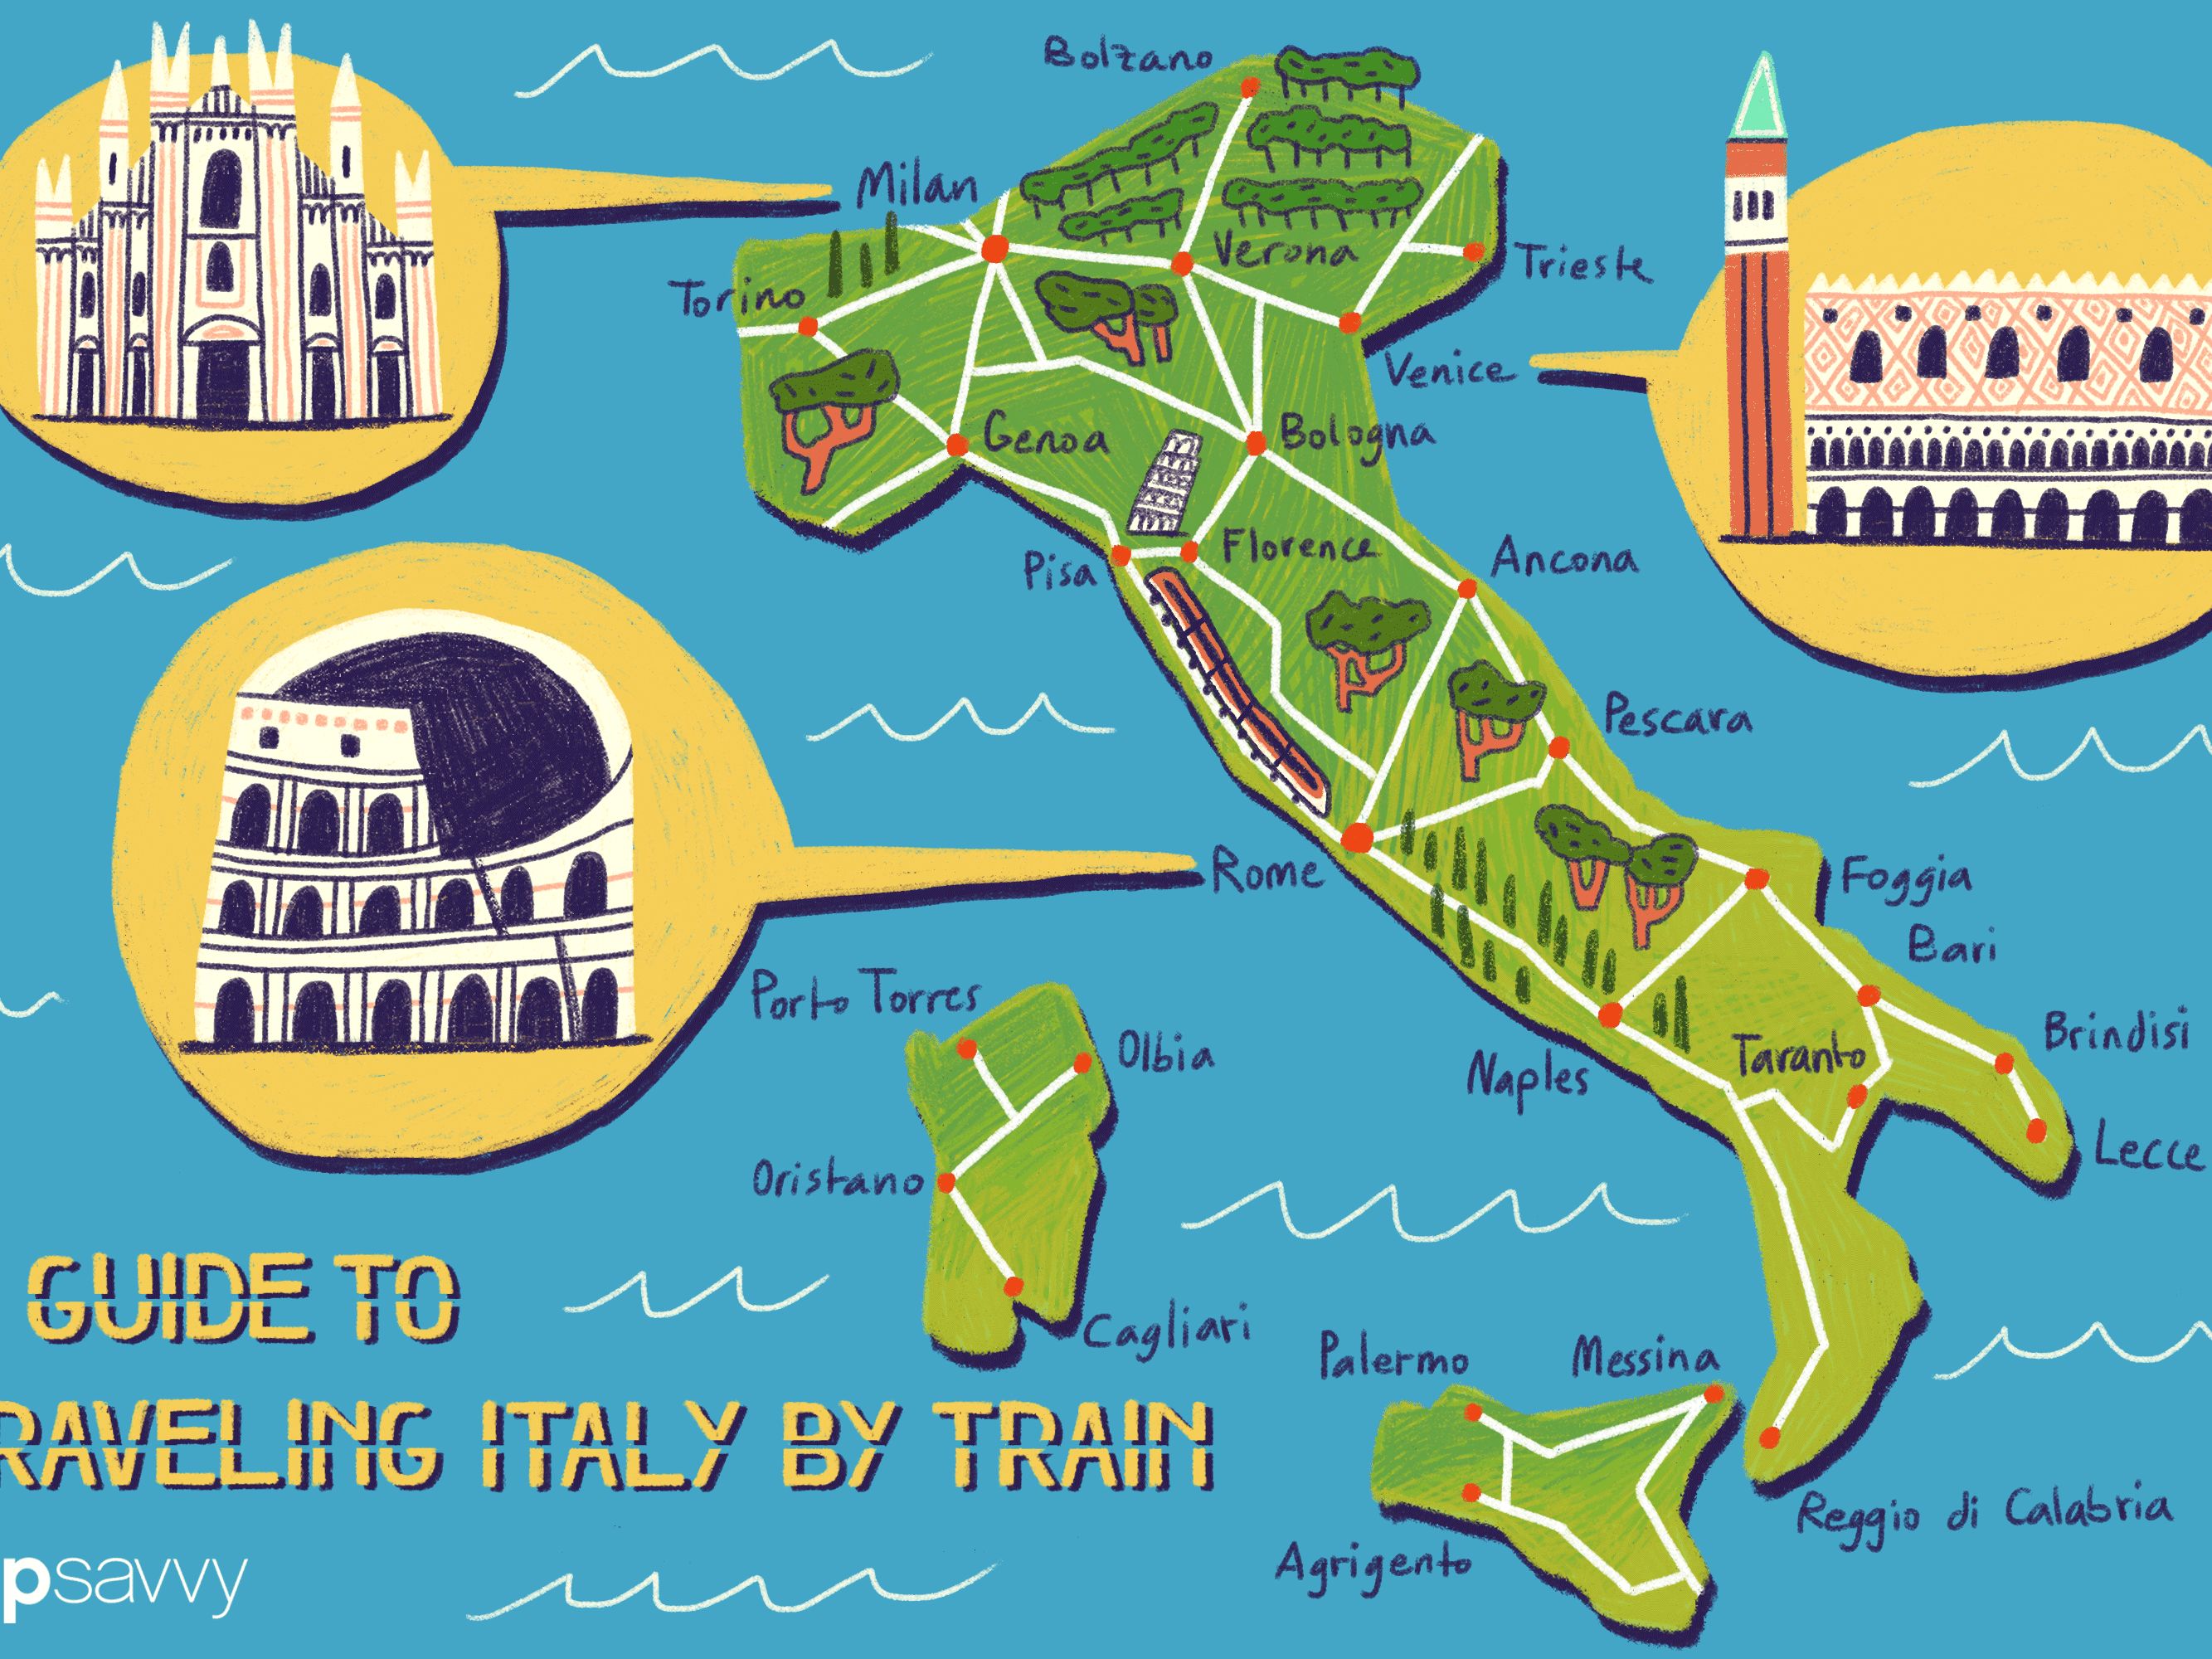 Map Of Trains In Italy.A Guide To Traveling Italy By Train